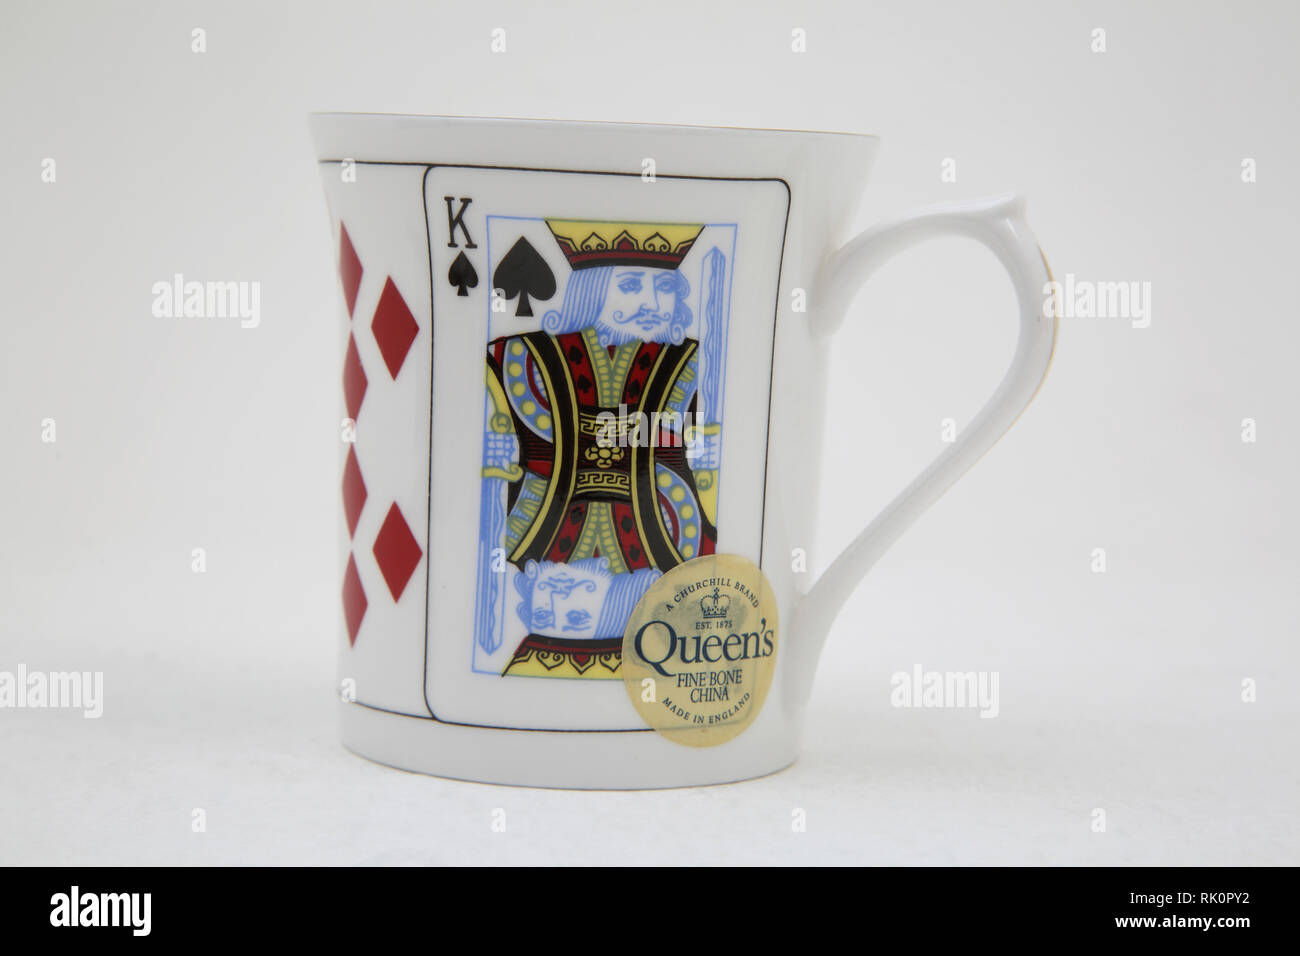 968eaa7aa3a Churchill Brand Queen's Fine Bone China Mug with Playing Cards Design -  Stock Image